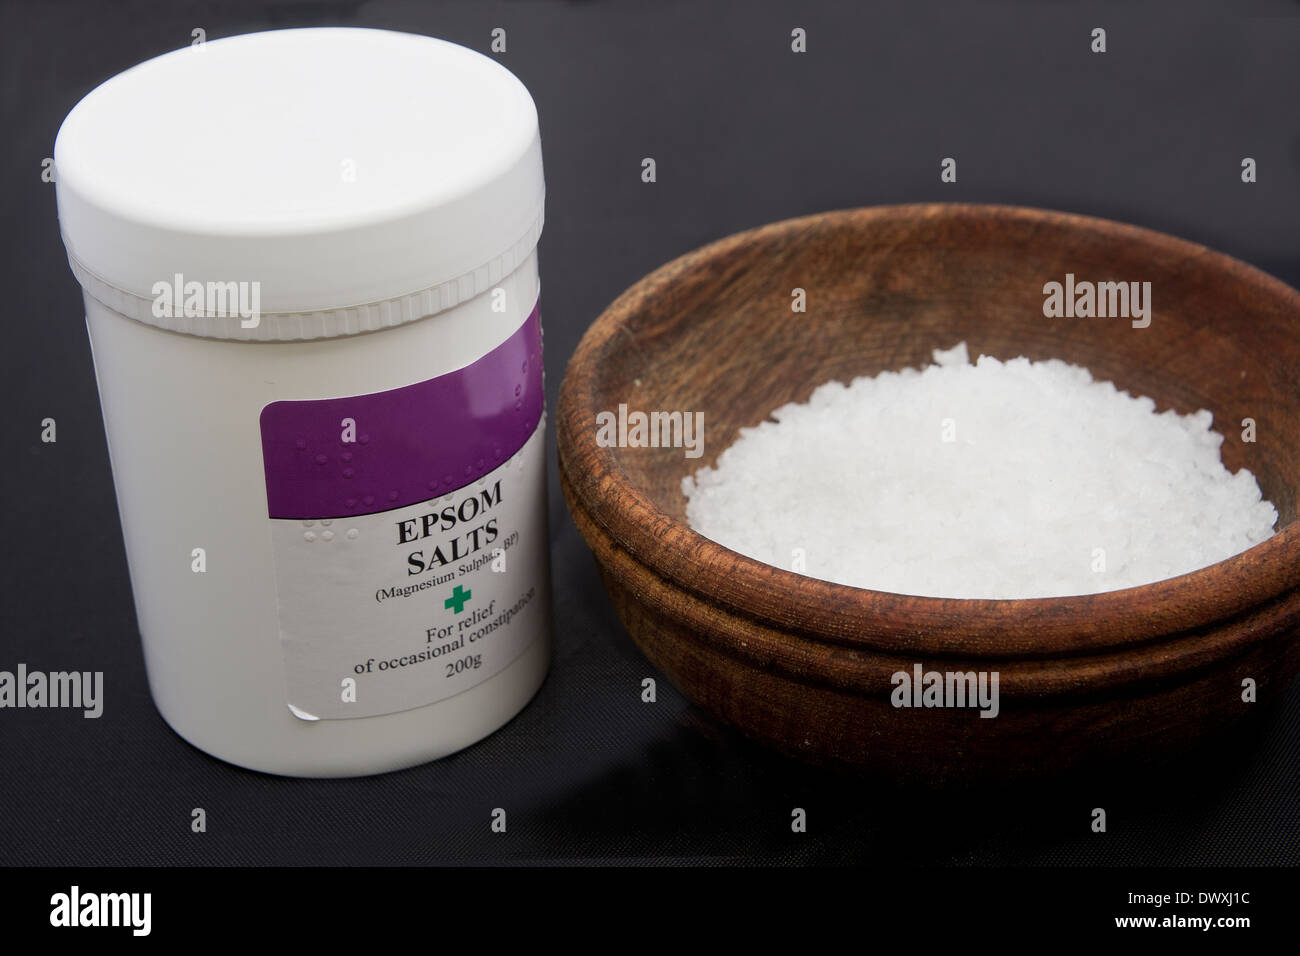 container of Epsom Salts - Stock Image